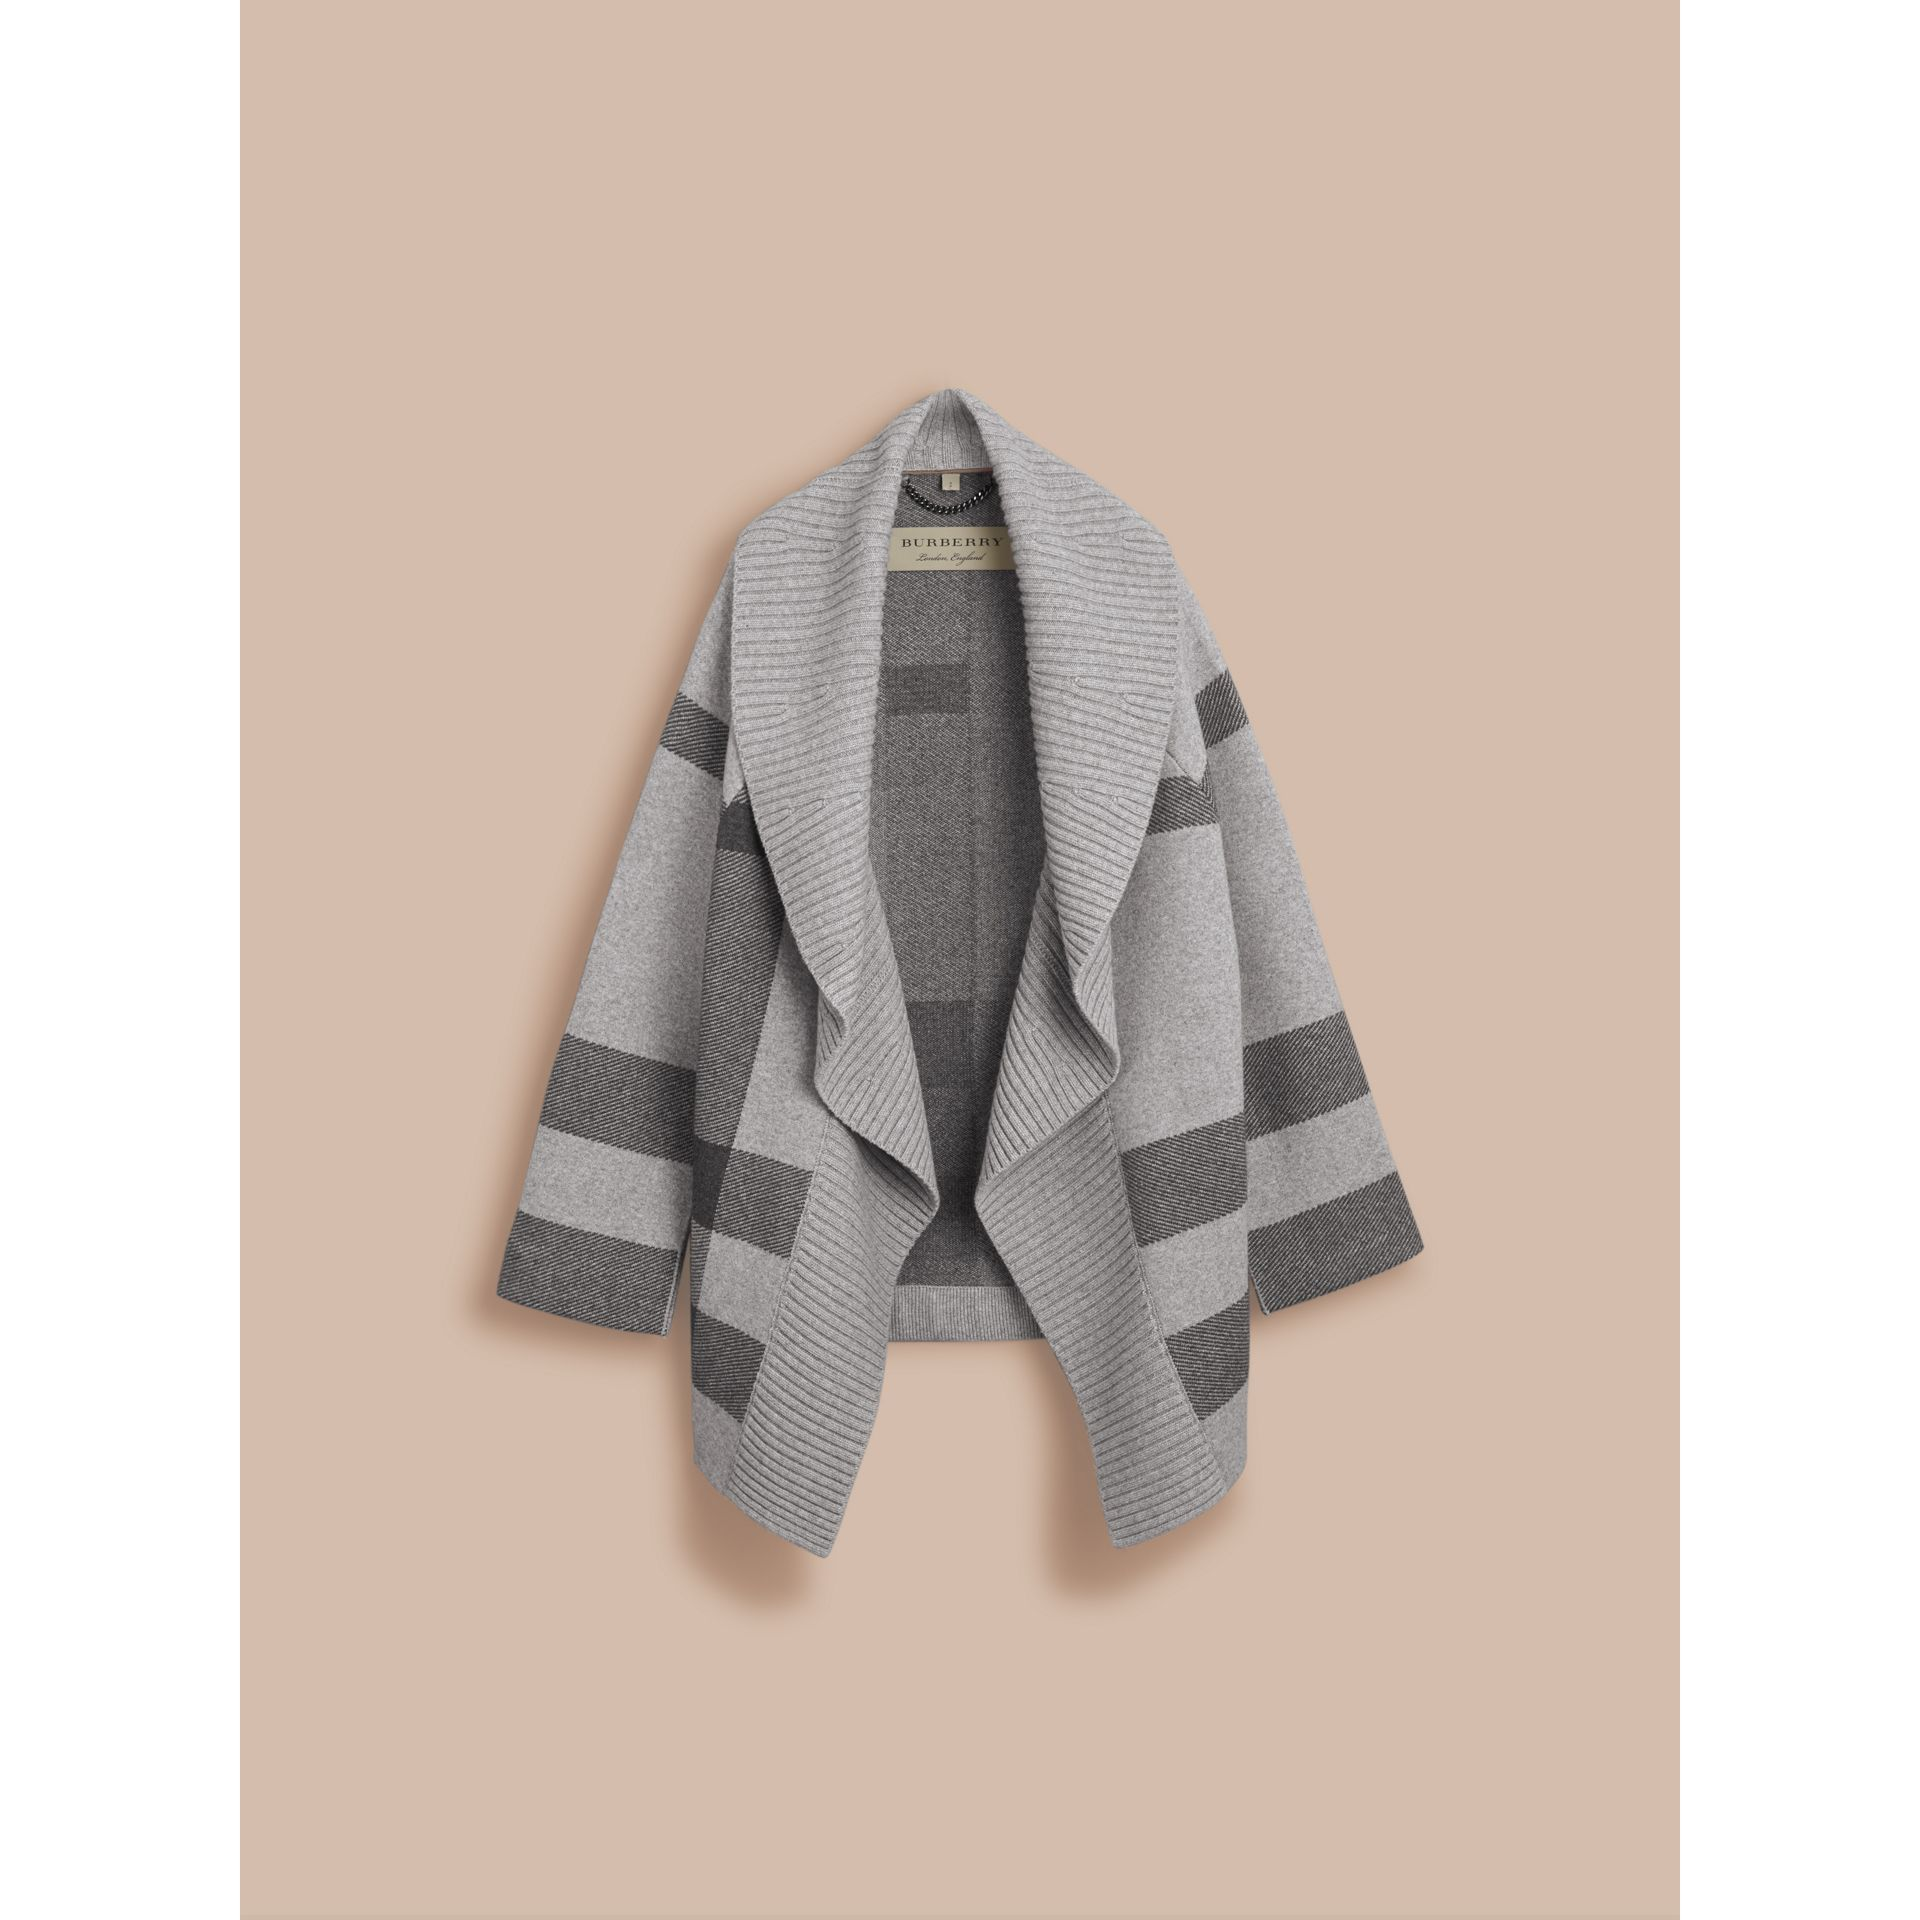 Check Wool Cashmere Blend Cardigan Coat in Pale Grey Melange - Women | Burberry Singapore - gallery image 4